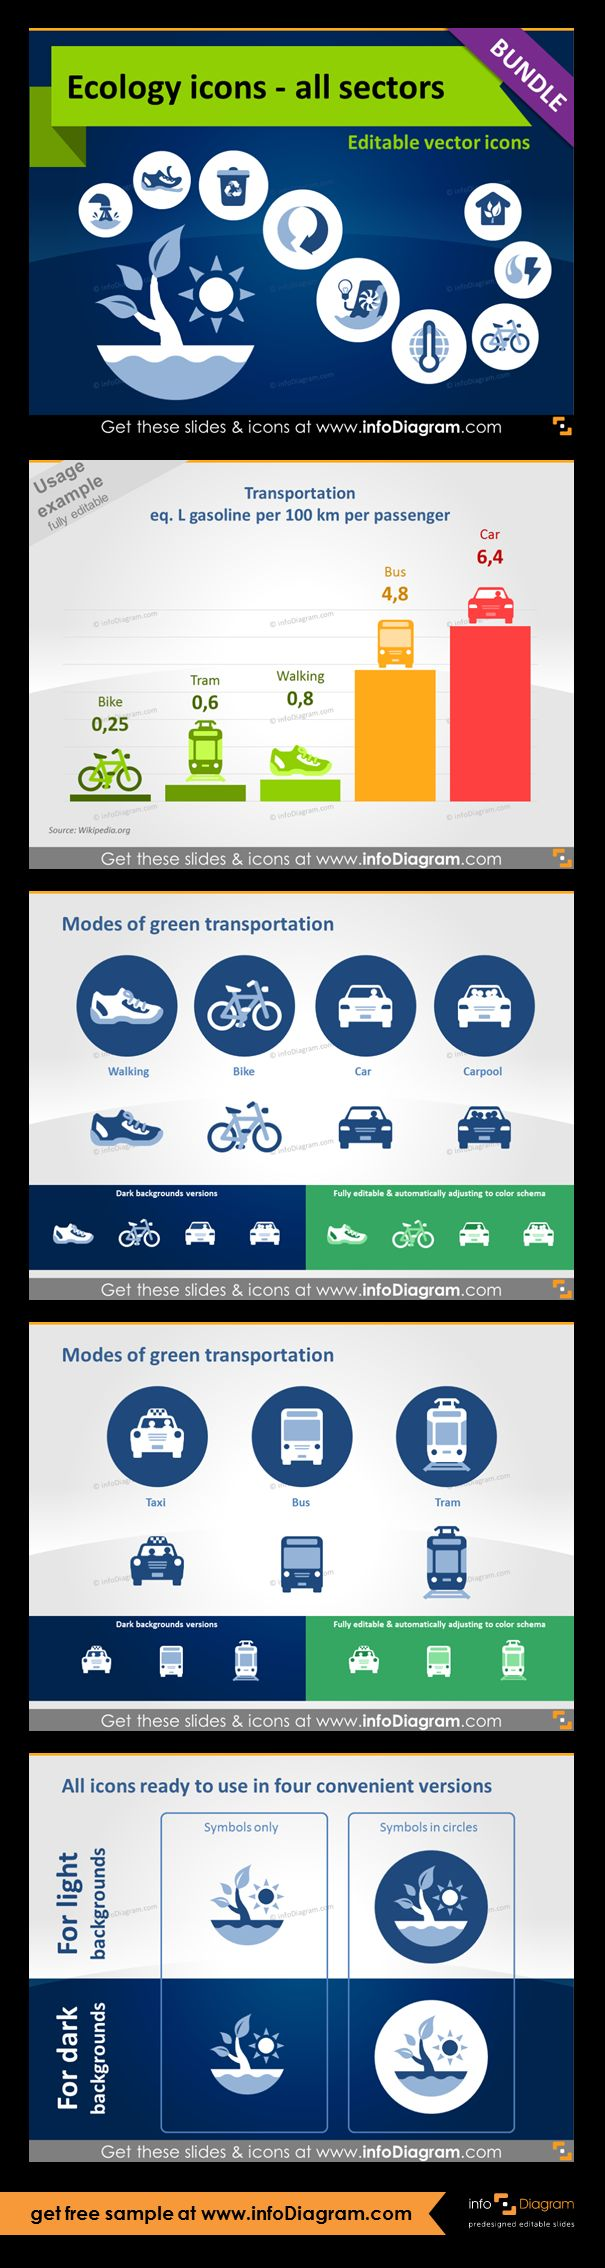 Ecology icons and visuals for ecology related presentations. Example on transportation statistics. Sustainable and green transport: Walking, Bike, Car, Carpool, Taxi, Bus, Tram. Example of editing icons.